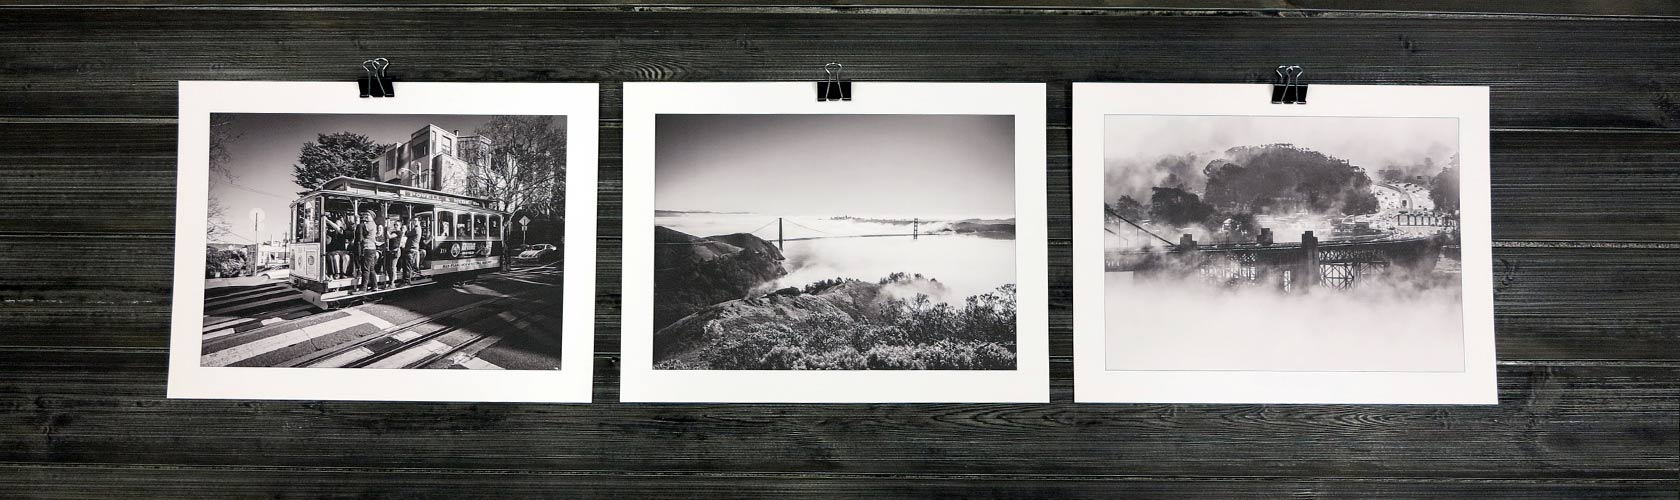 Posters-21x30-3st